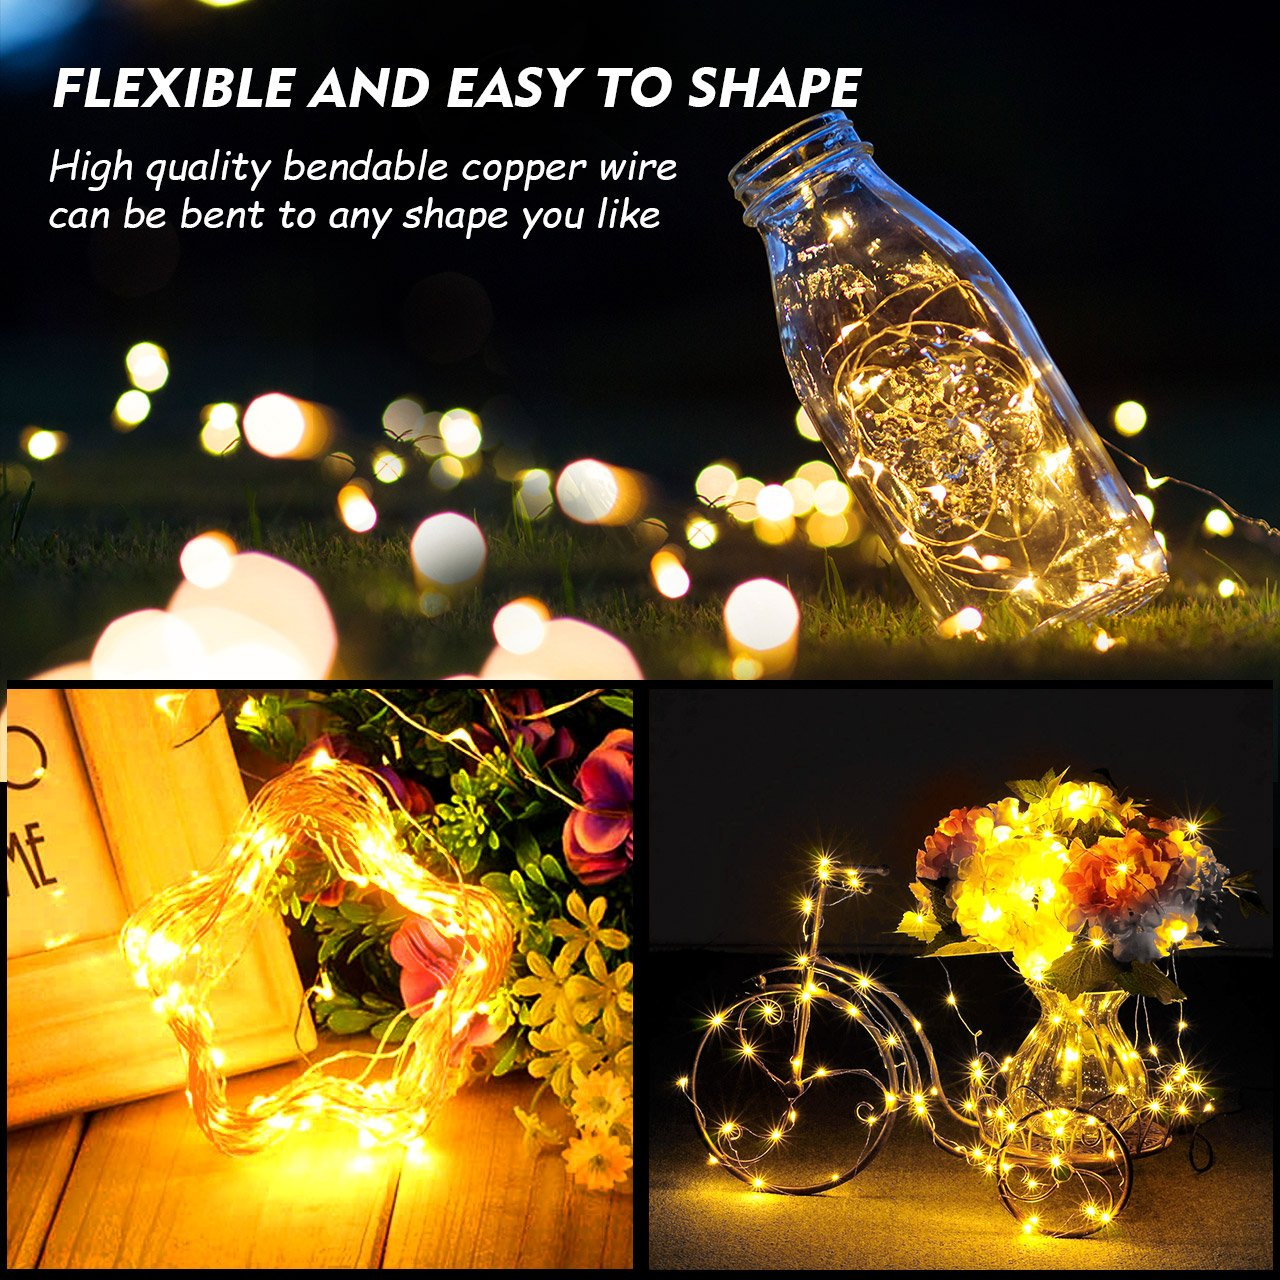 Mpow Led String Lights With Remote Control 66ft 200led Installing A Of Wiring Diagram Waterproof Decorative Dimmable Copper Wire For Indoor And Outdoor